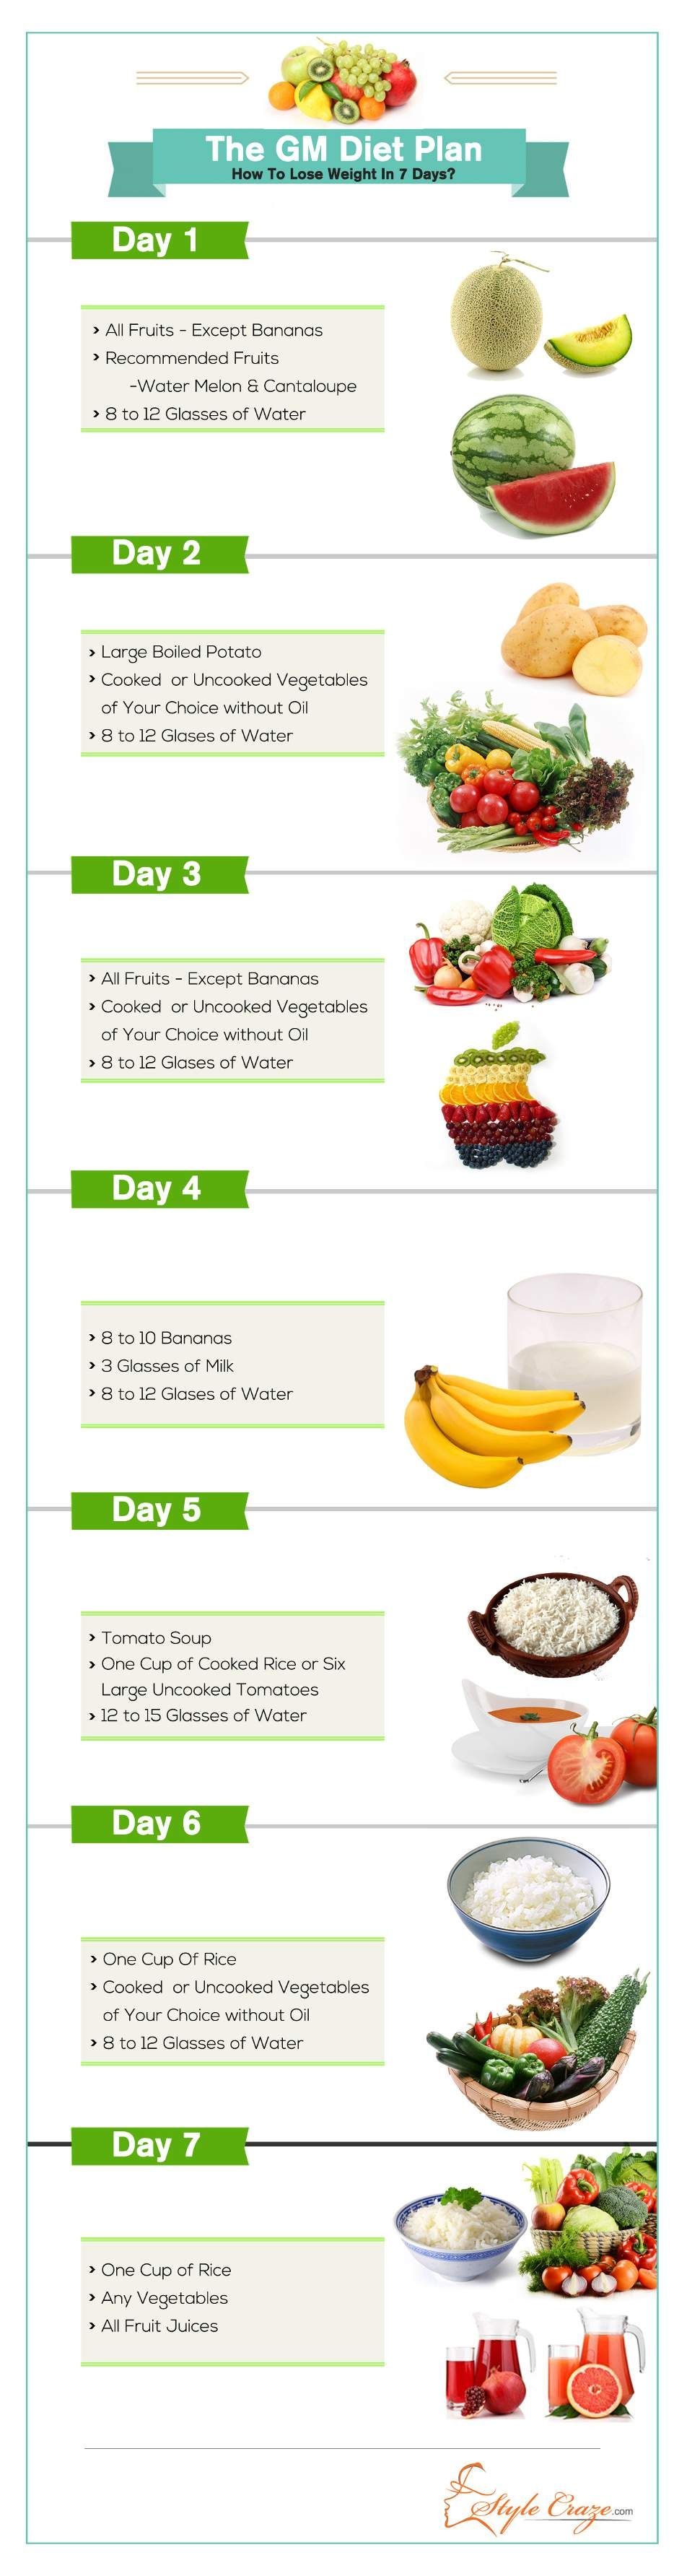 Weight gain diet plan for vegetarian in hindi image 3